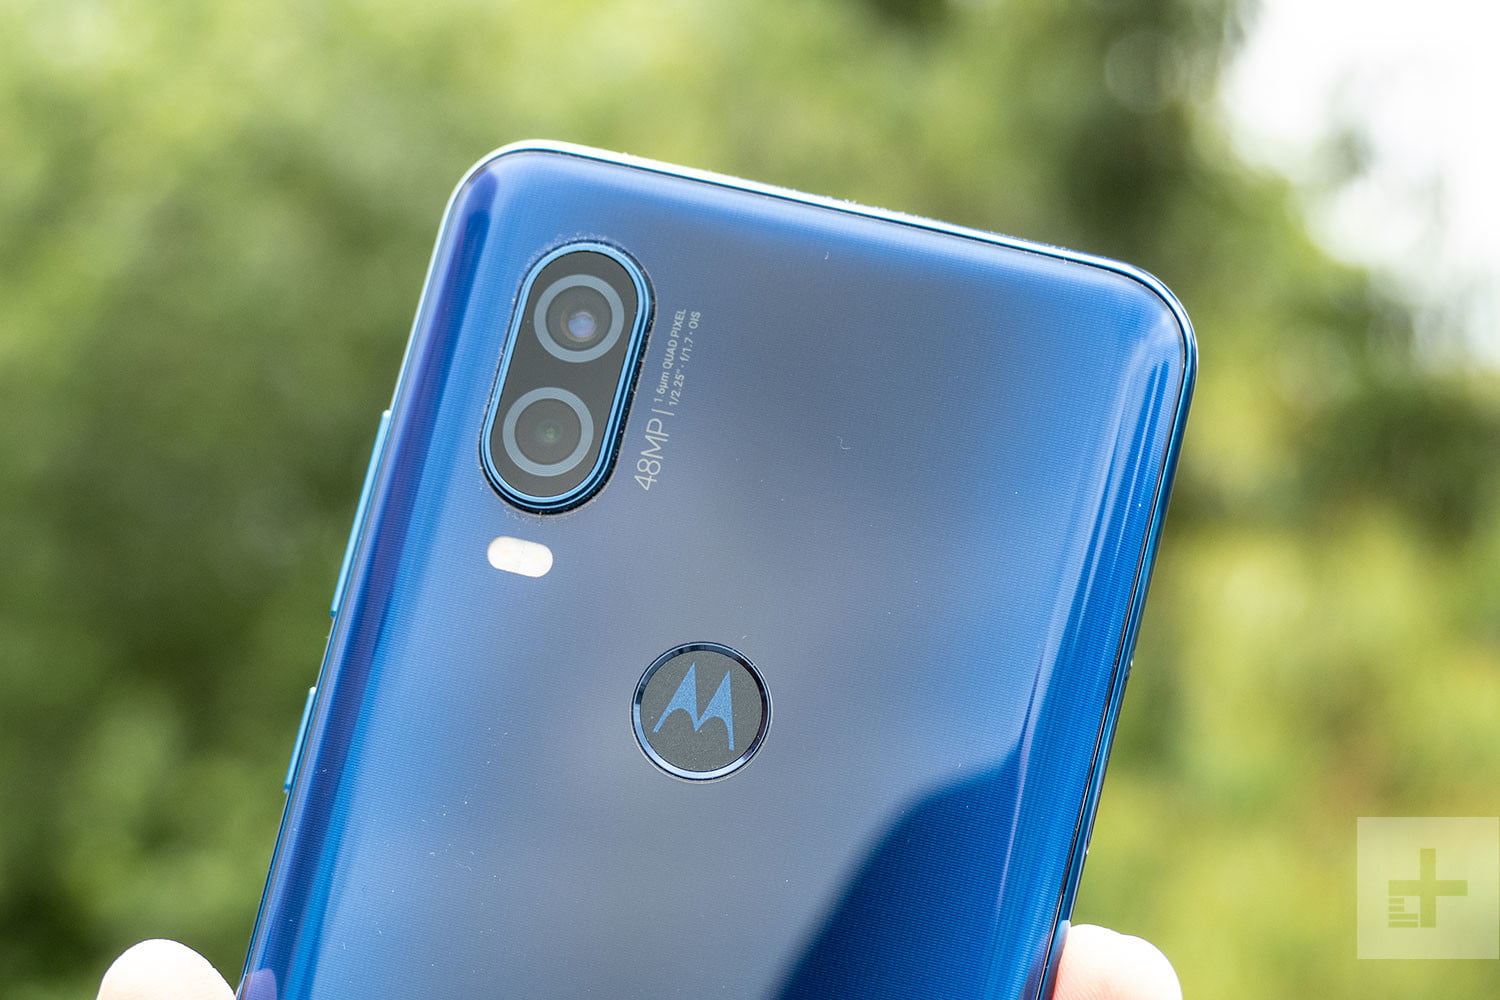 Do we need a 48-megapixel camera on a phone? We asked the experts